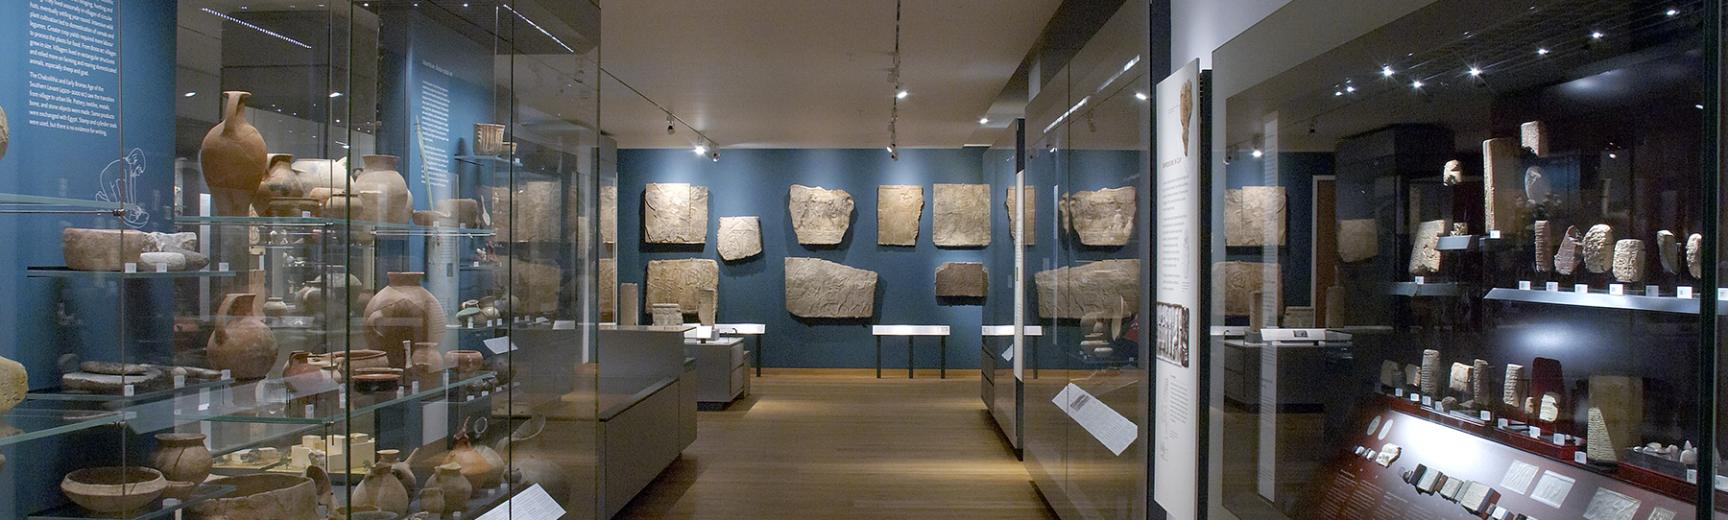 The Ancient Near East Gallery at the Ashmolean Museum